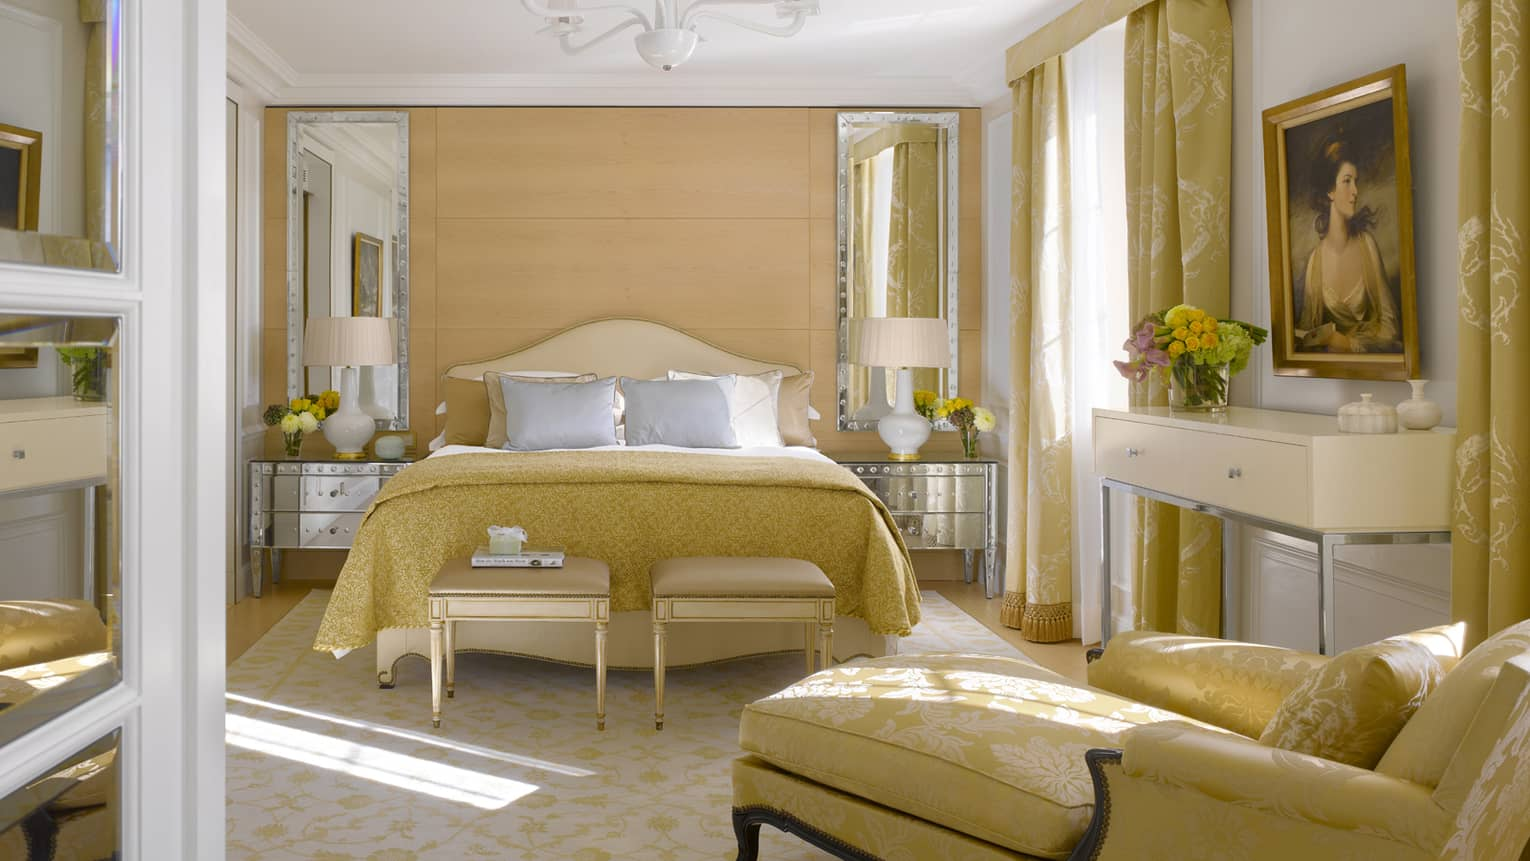 Bedroom with yellow-gold upholstery, chaise lounge and french doors